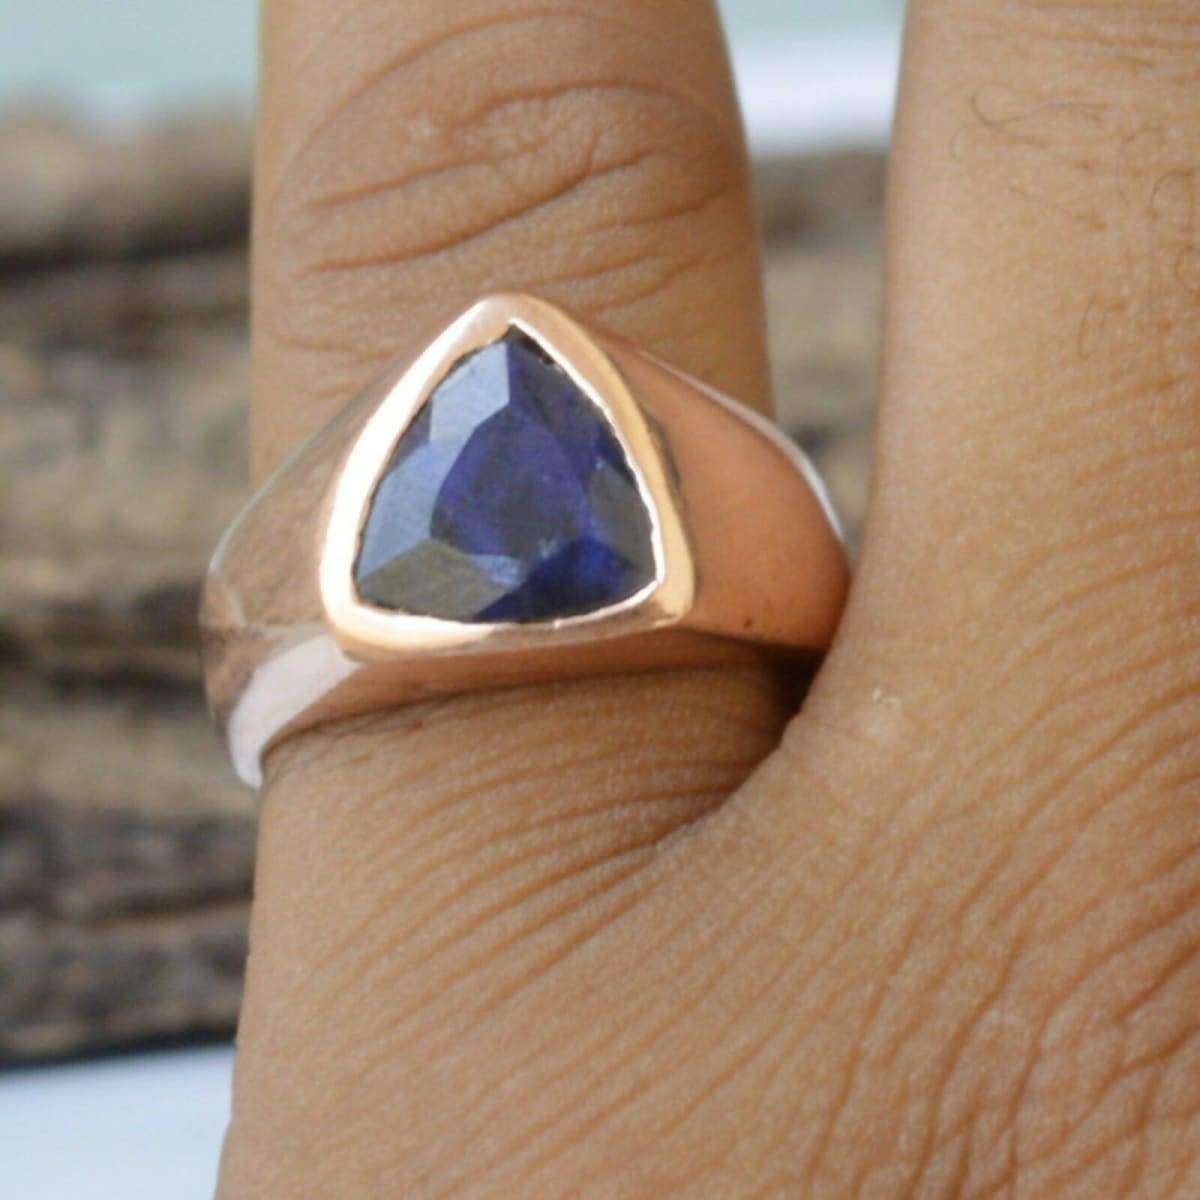 Rings Natural Trillion Blue Sapphire Gemstone Sterling Silver Rose Gold Filled Ring Jewelry Artisan Handmade Gift - Title by